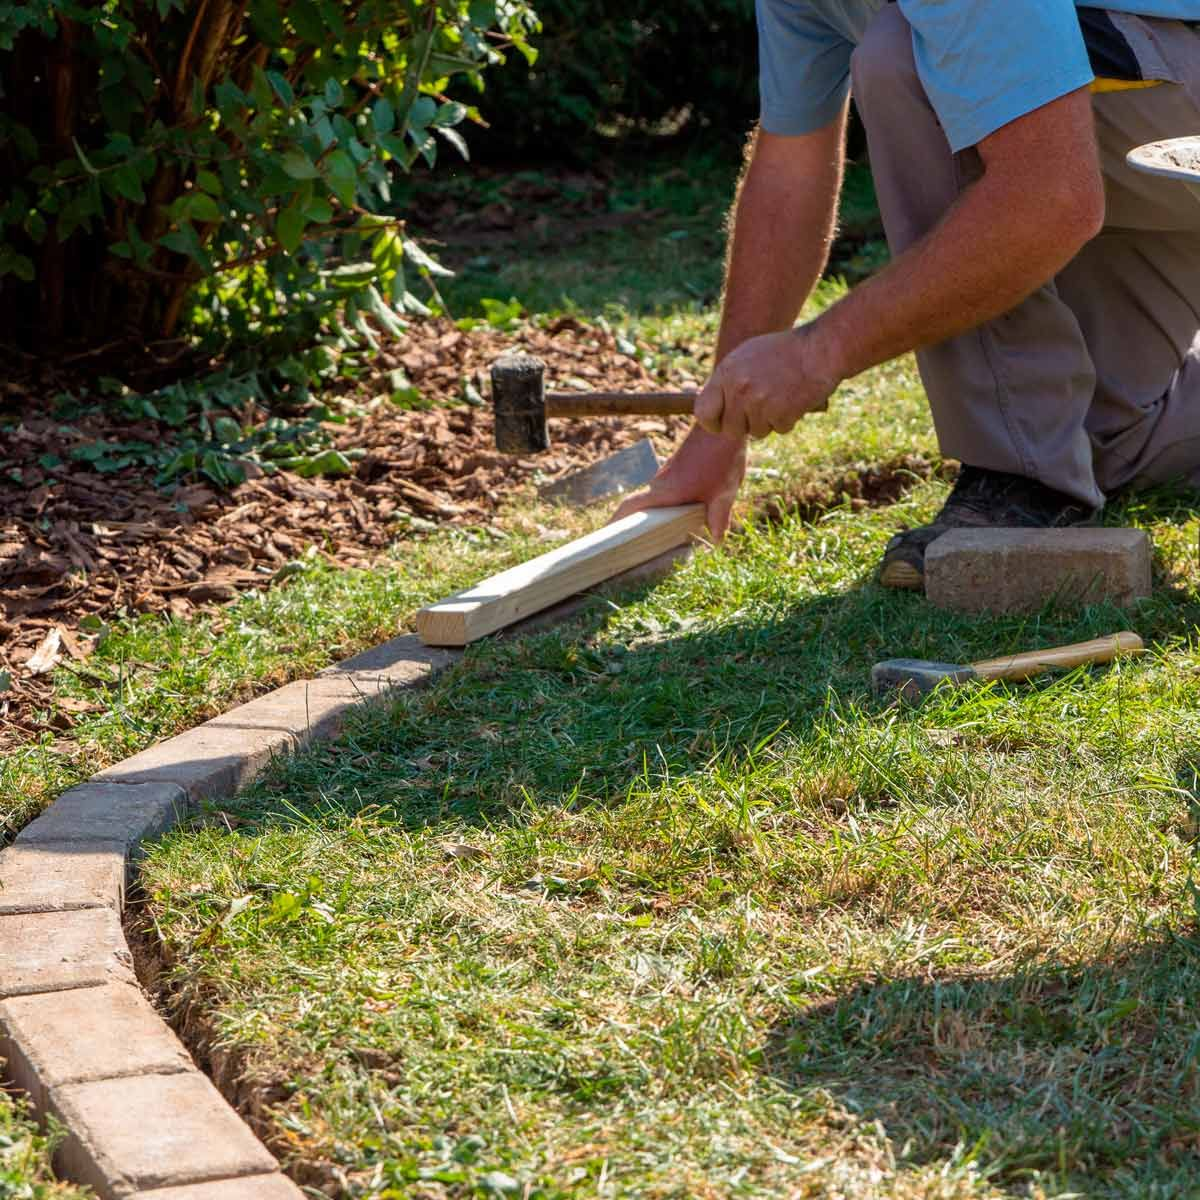 How to Install Concrete Flower Bed Edging #flowerbeds